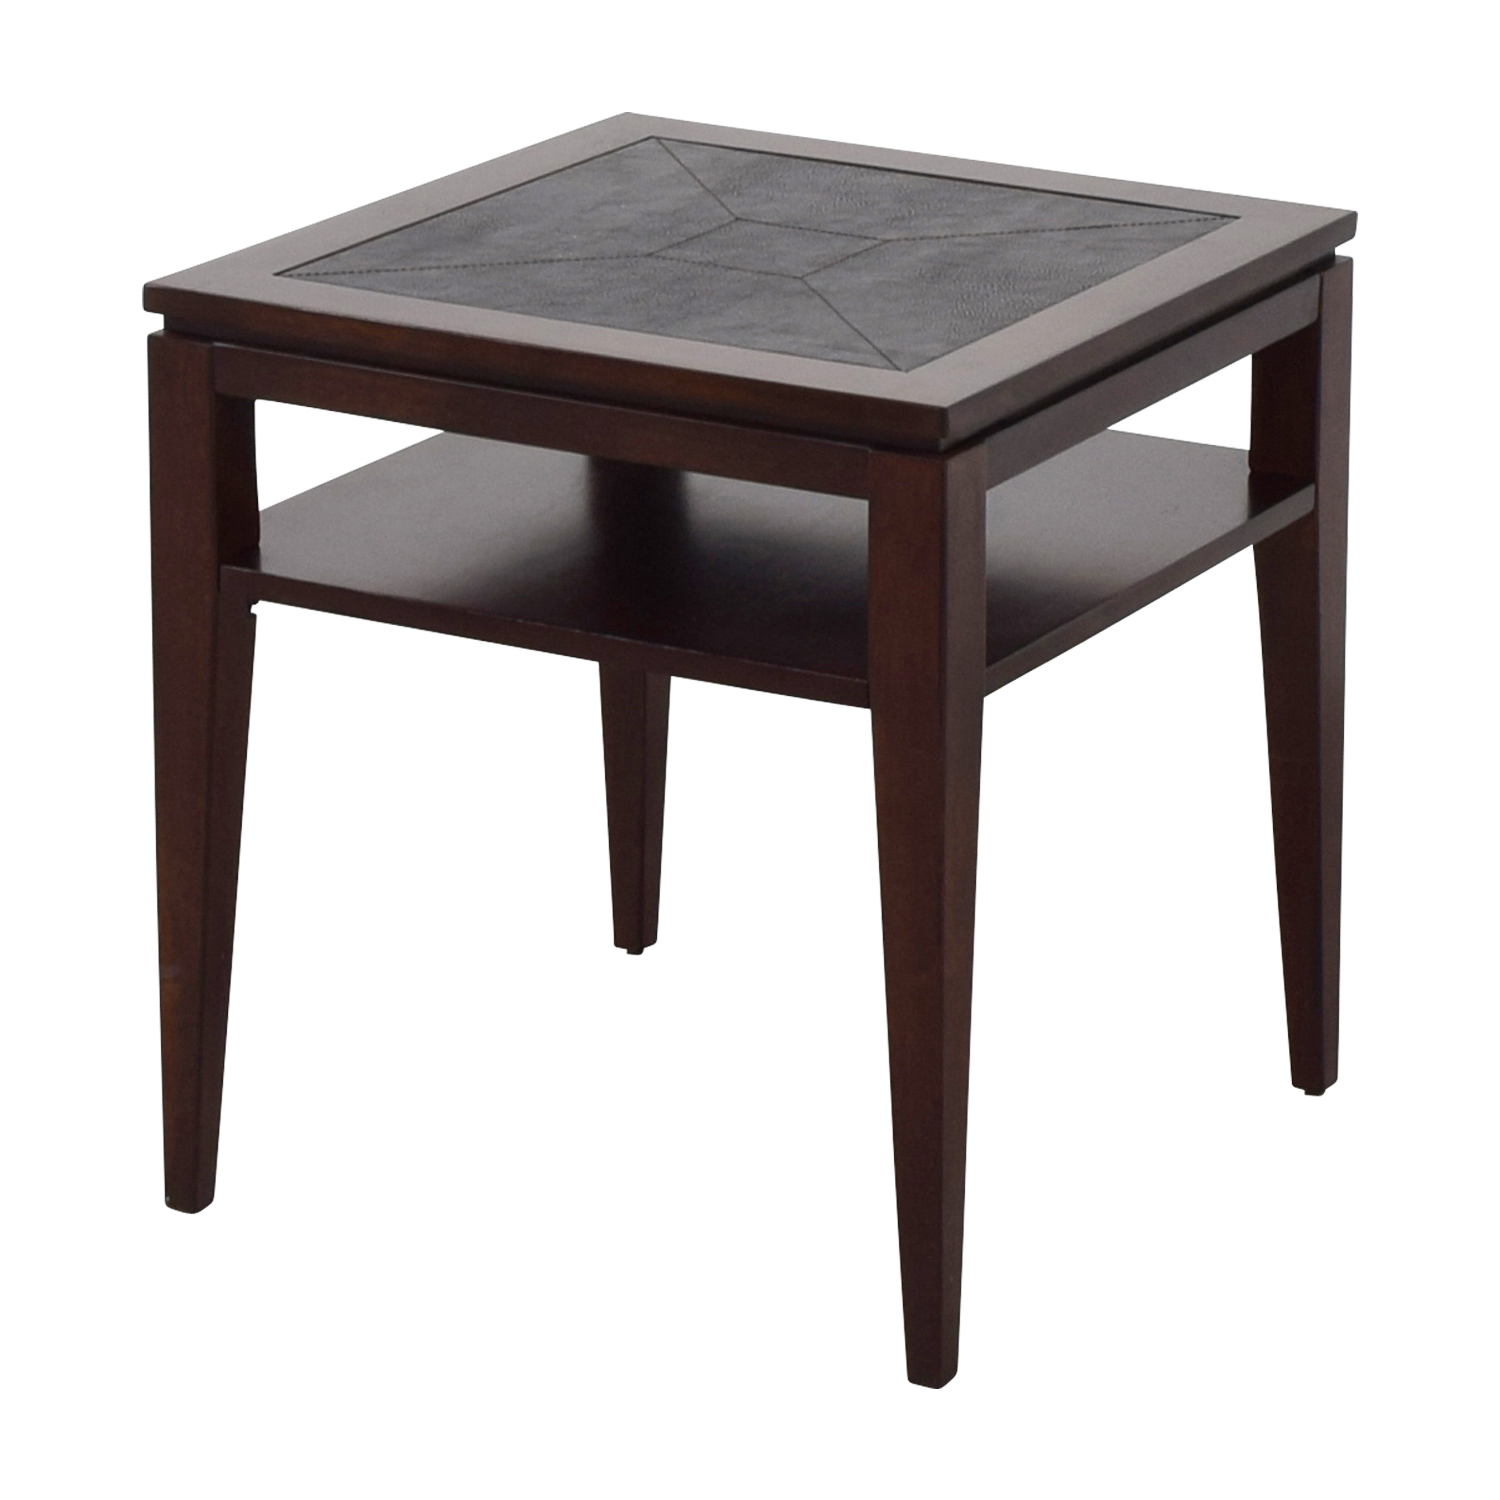 shop Raymour & Flanigan End Table Raymour & Flanigan End Tables